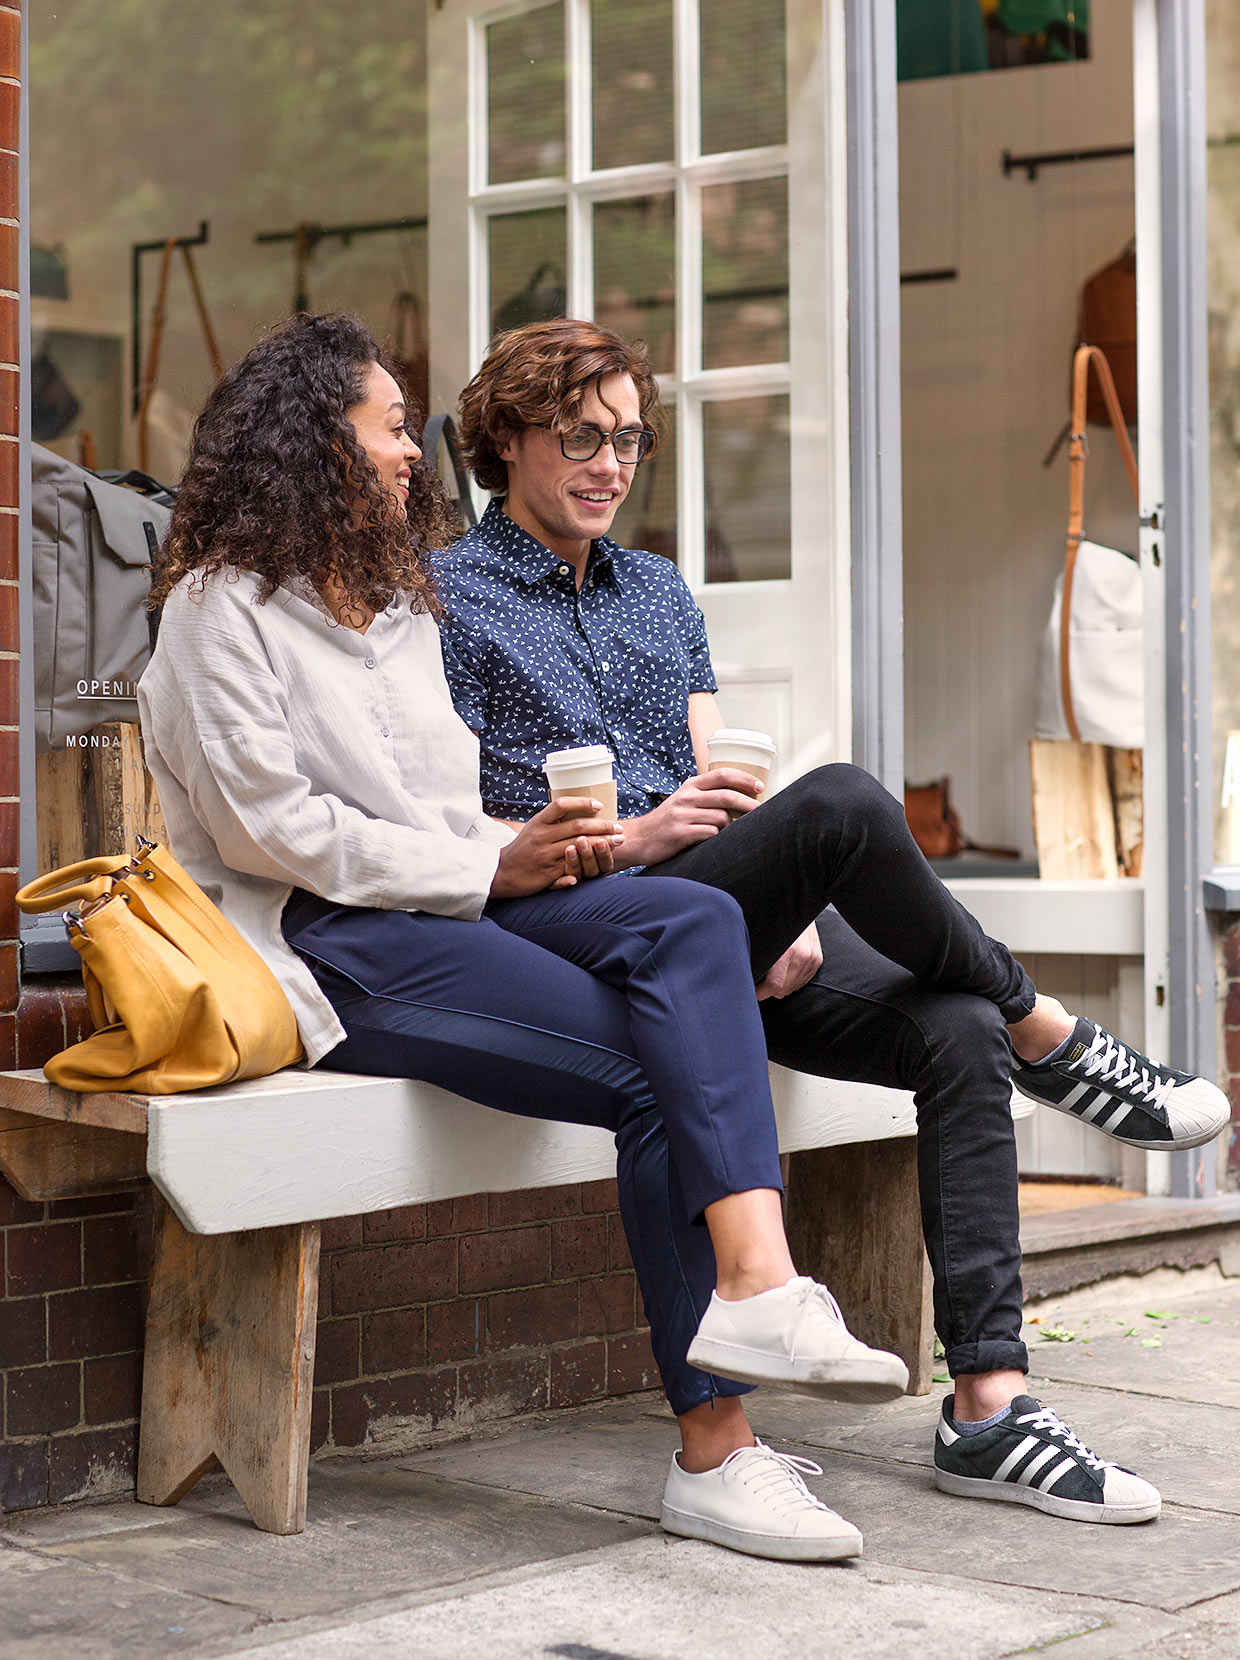 Fashionable couple sit outside shop with coffee